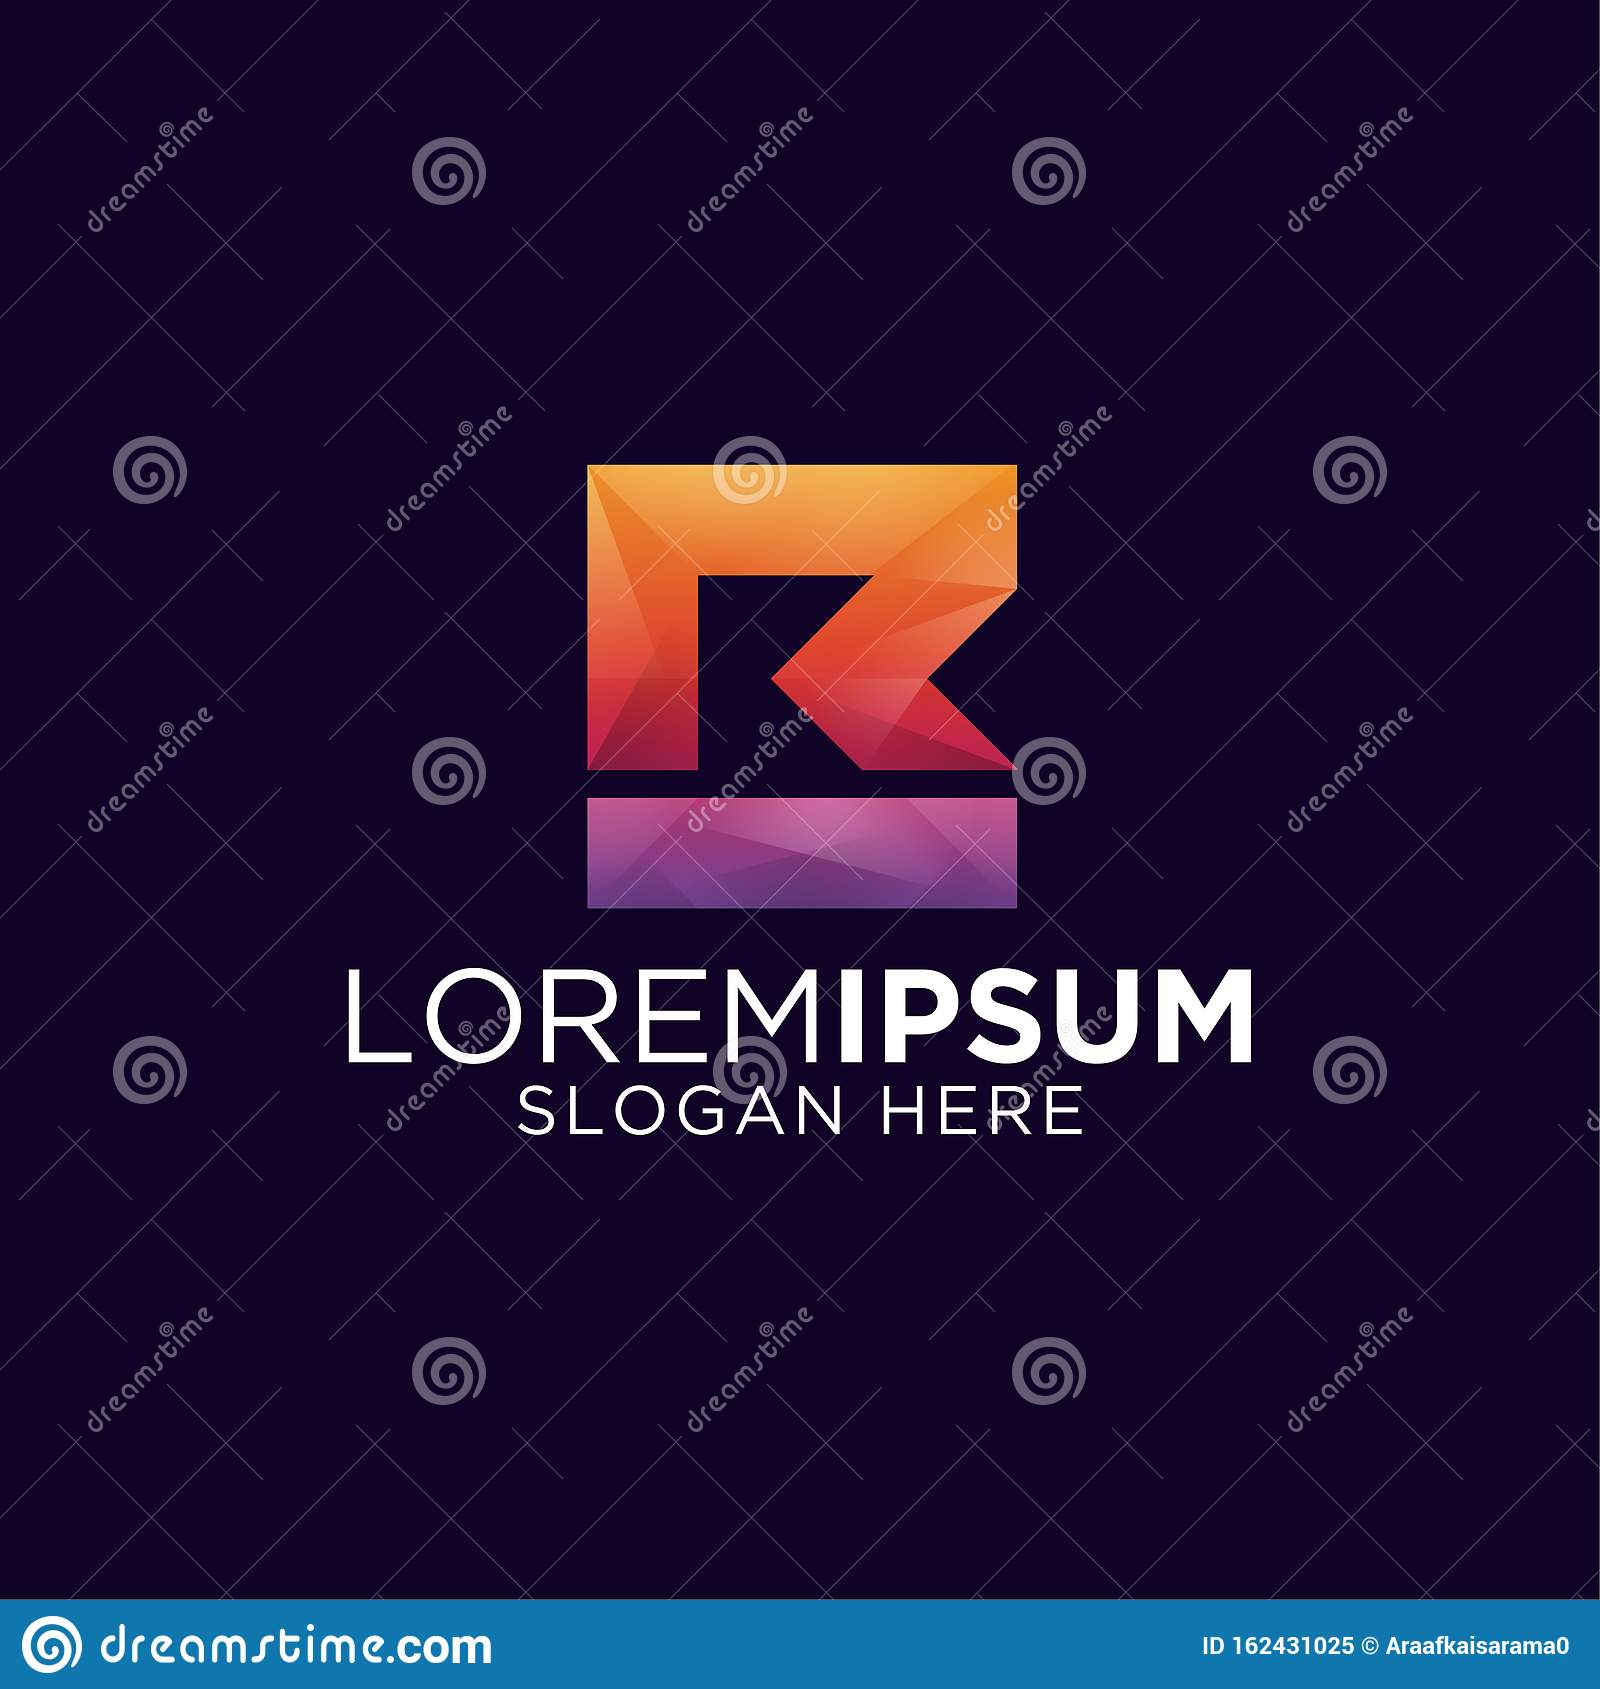 letter m and r logo design vector illustration premium vector 3d colorful gradient color m and r with masculine style symbol stock illustration illustration of capital letter 162431025 dreamstime com